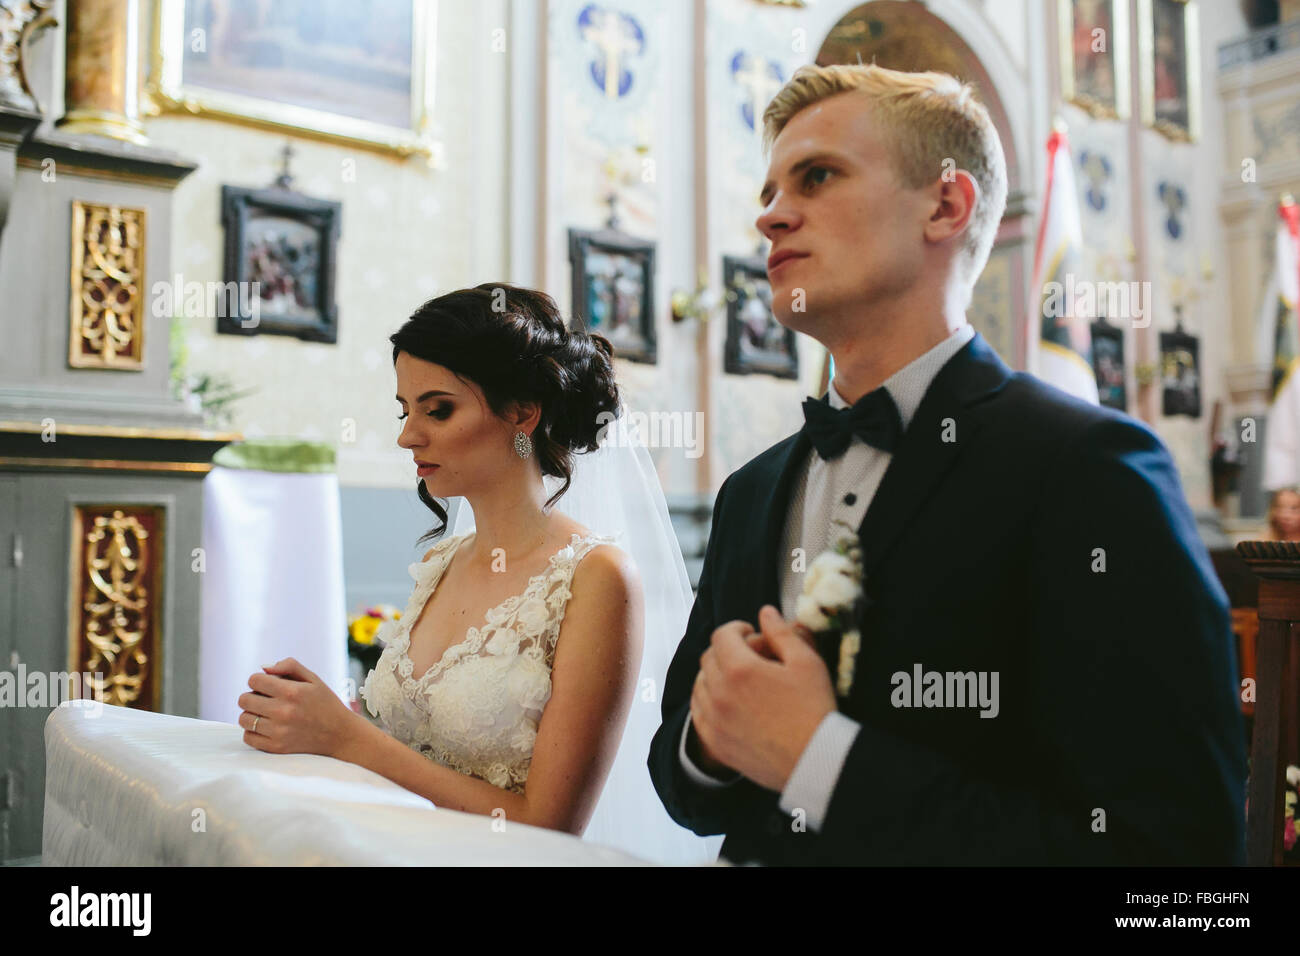 Bride and groom in the church - Stock Image